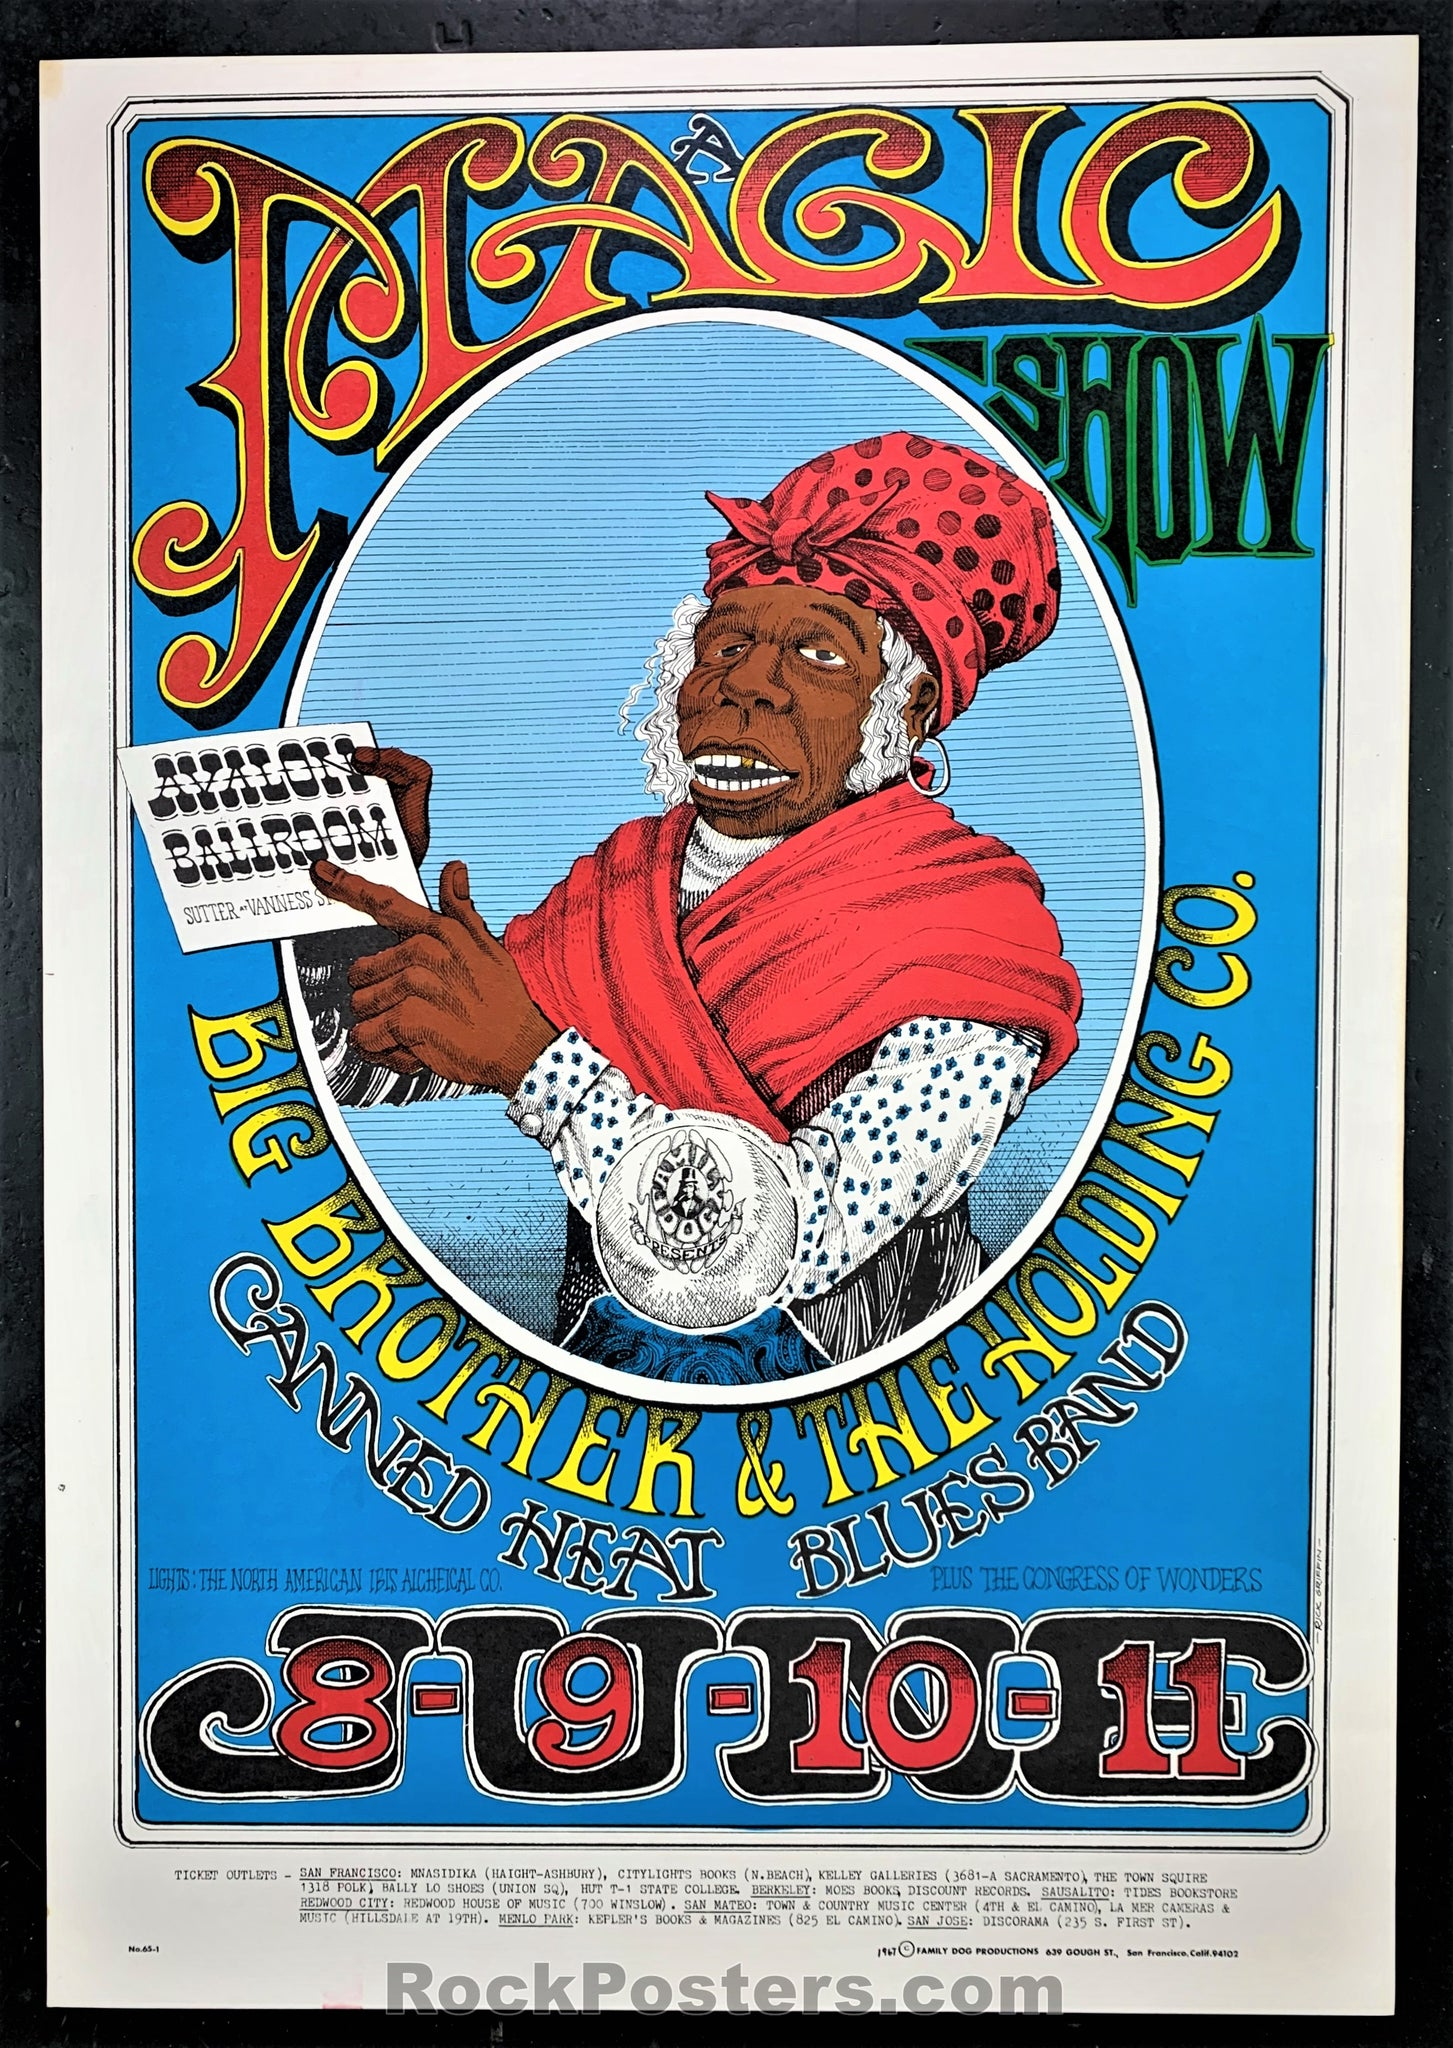 AUCTION -  FD65 -  Big Brother Janis Joplin 1967 Original Poster - Avalon Ballroom - Condition - Near Mint Minus